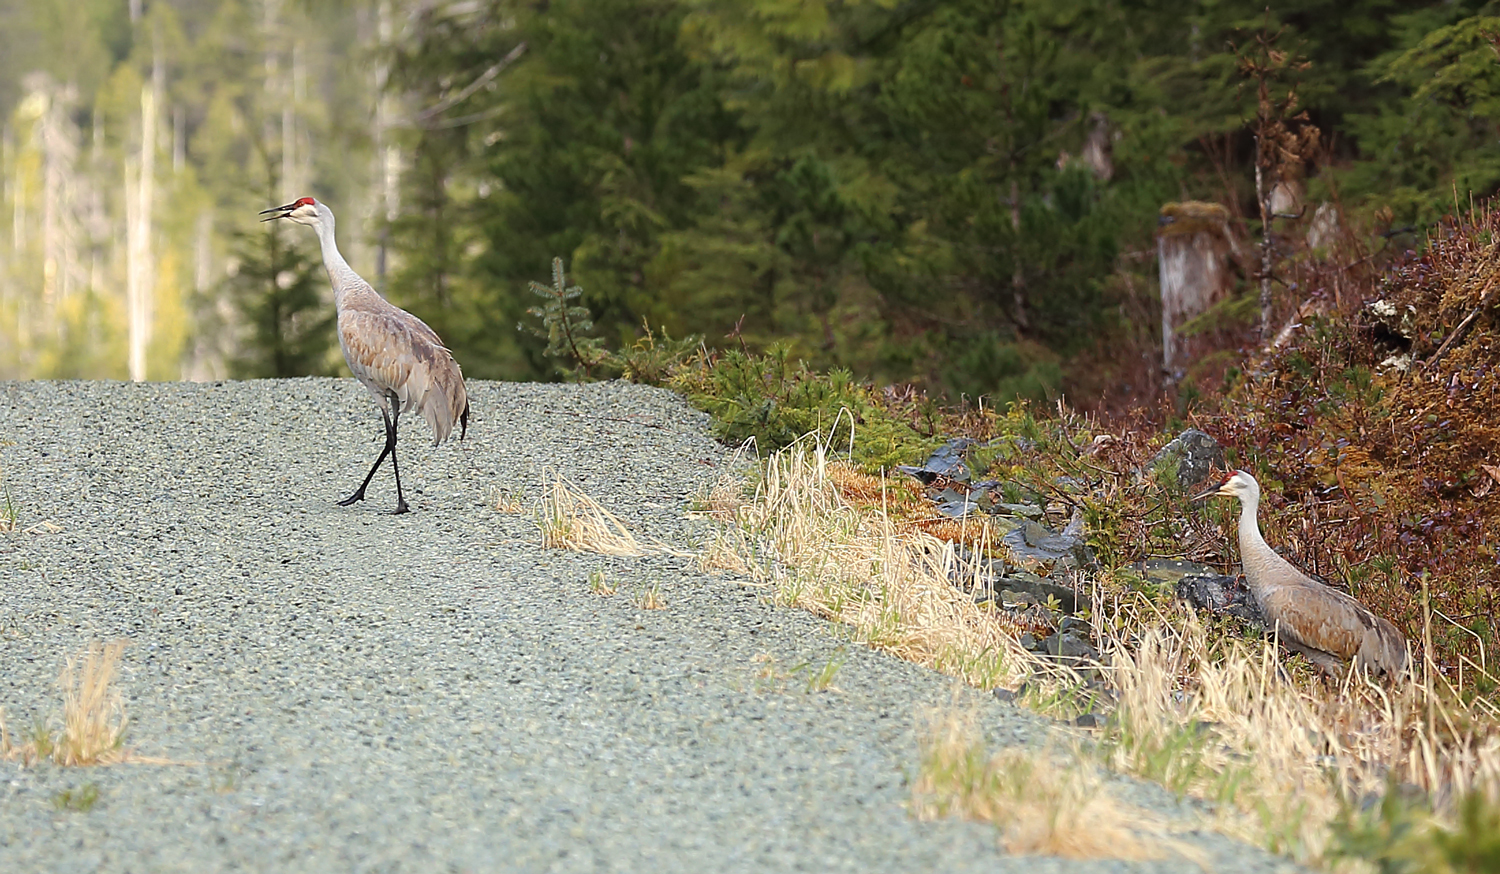 Why did the sandhill cranes cross the road?